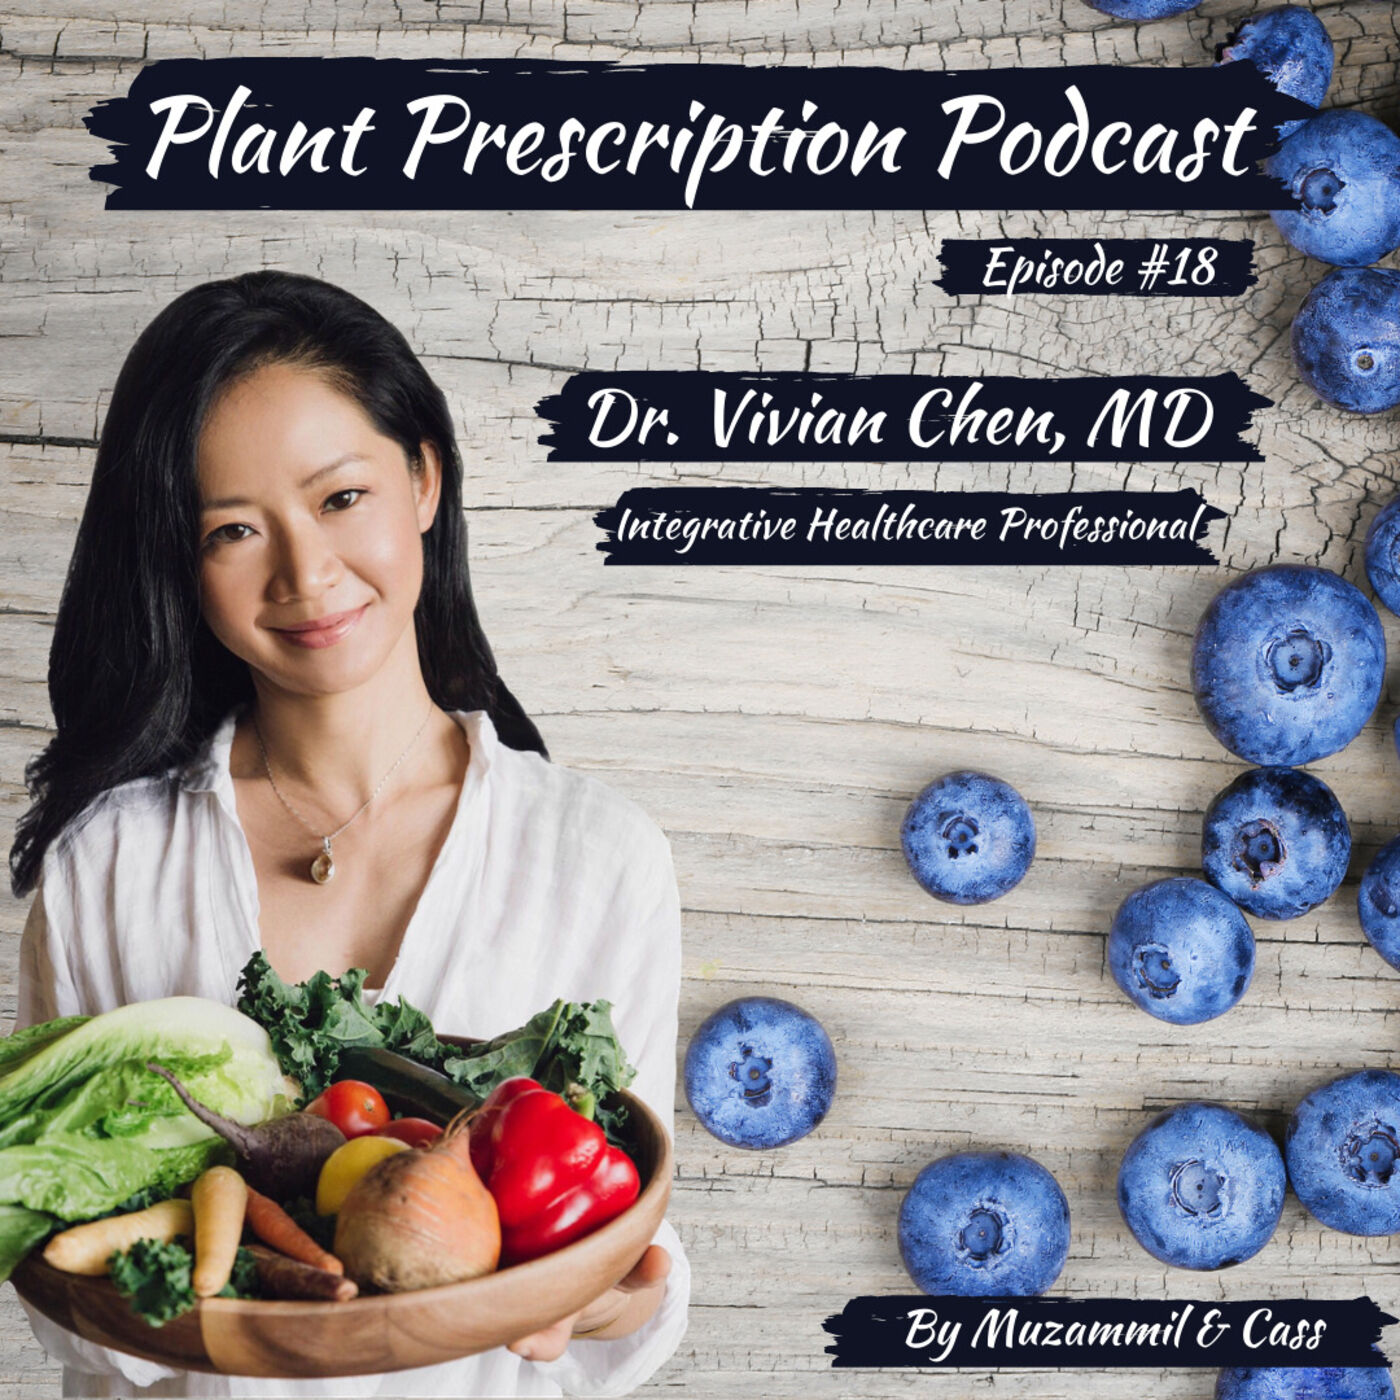 The truth behind dairy: Hormones, pus, whey, casein, addictive nature, bioaccumulation of toxins, and more with Dr. Vivian Chen